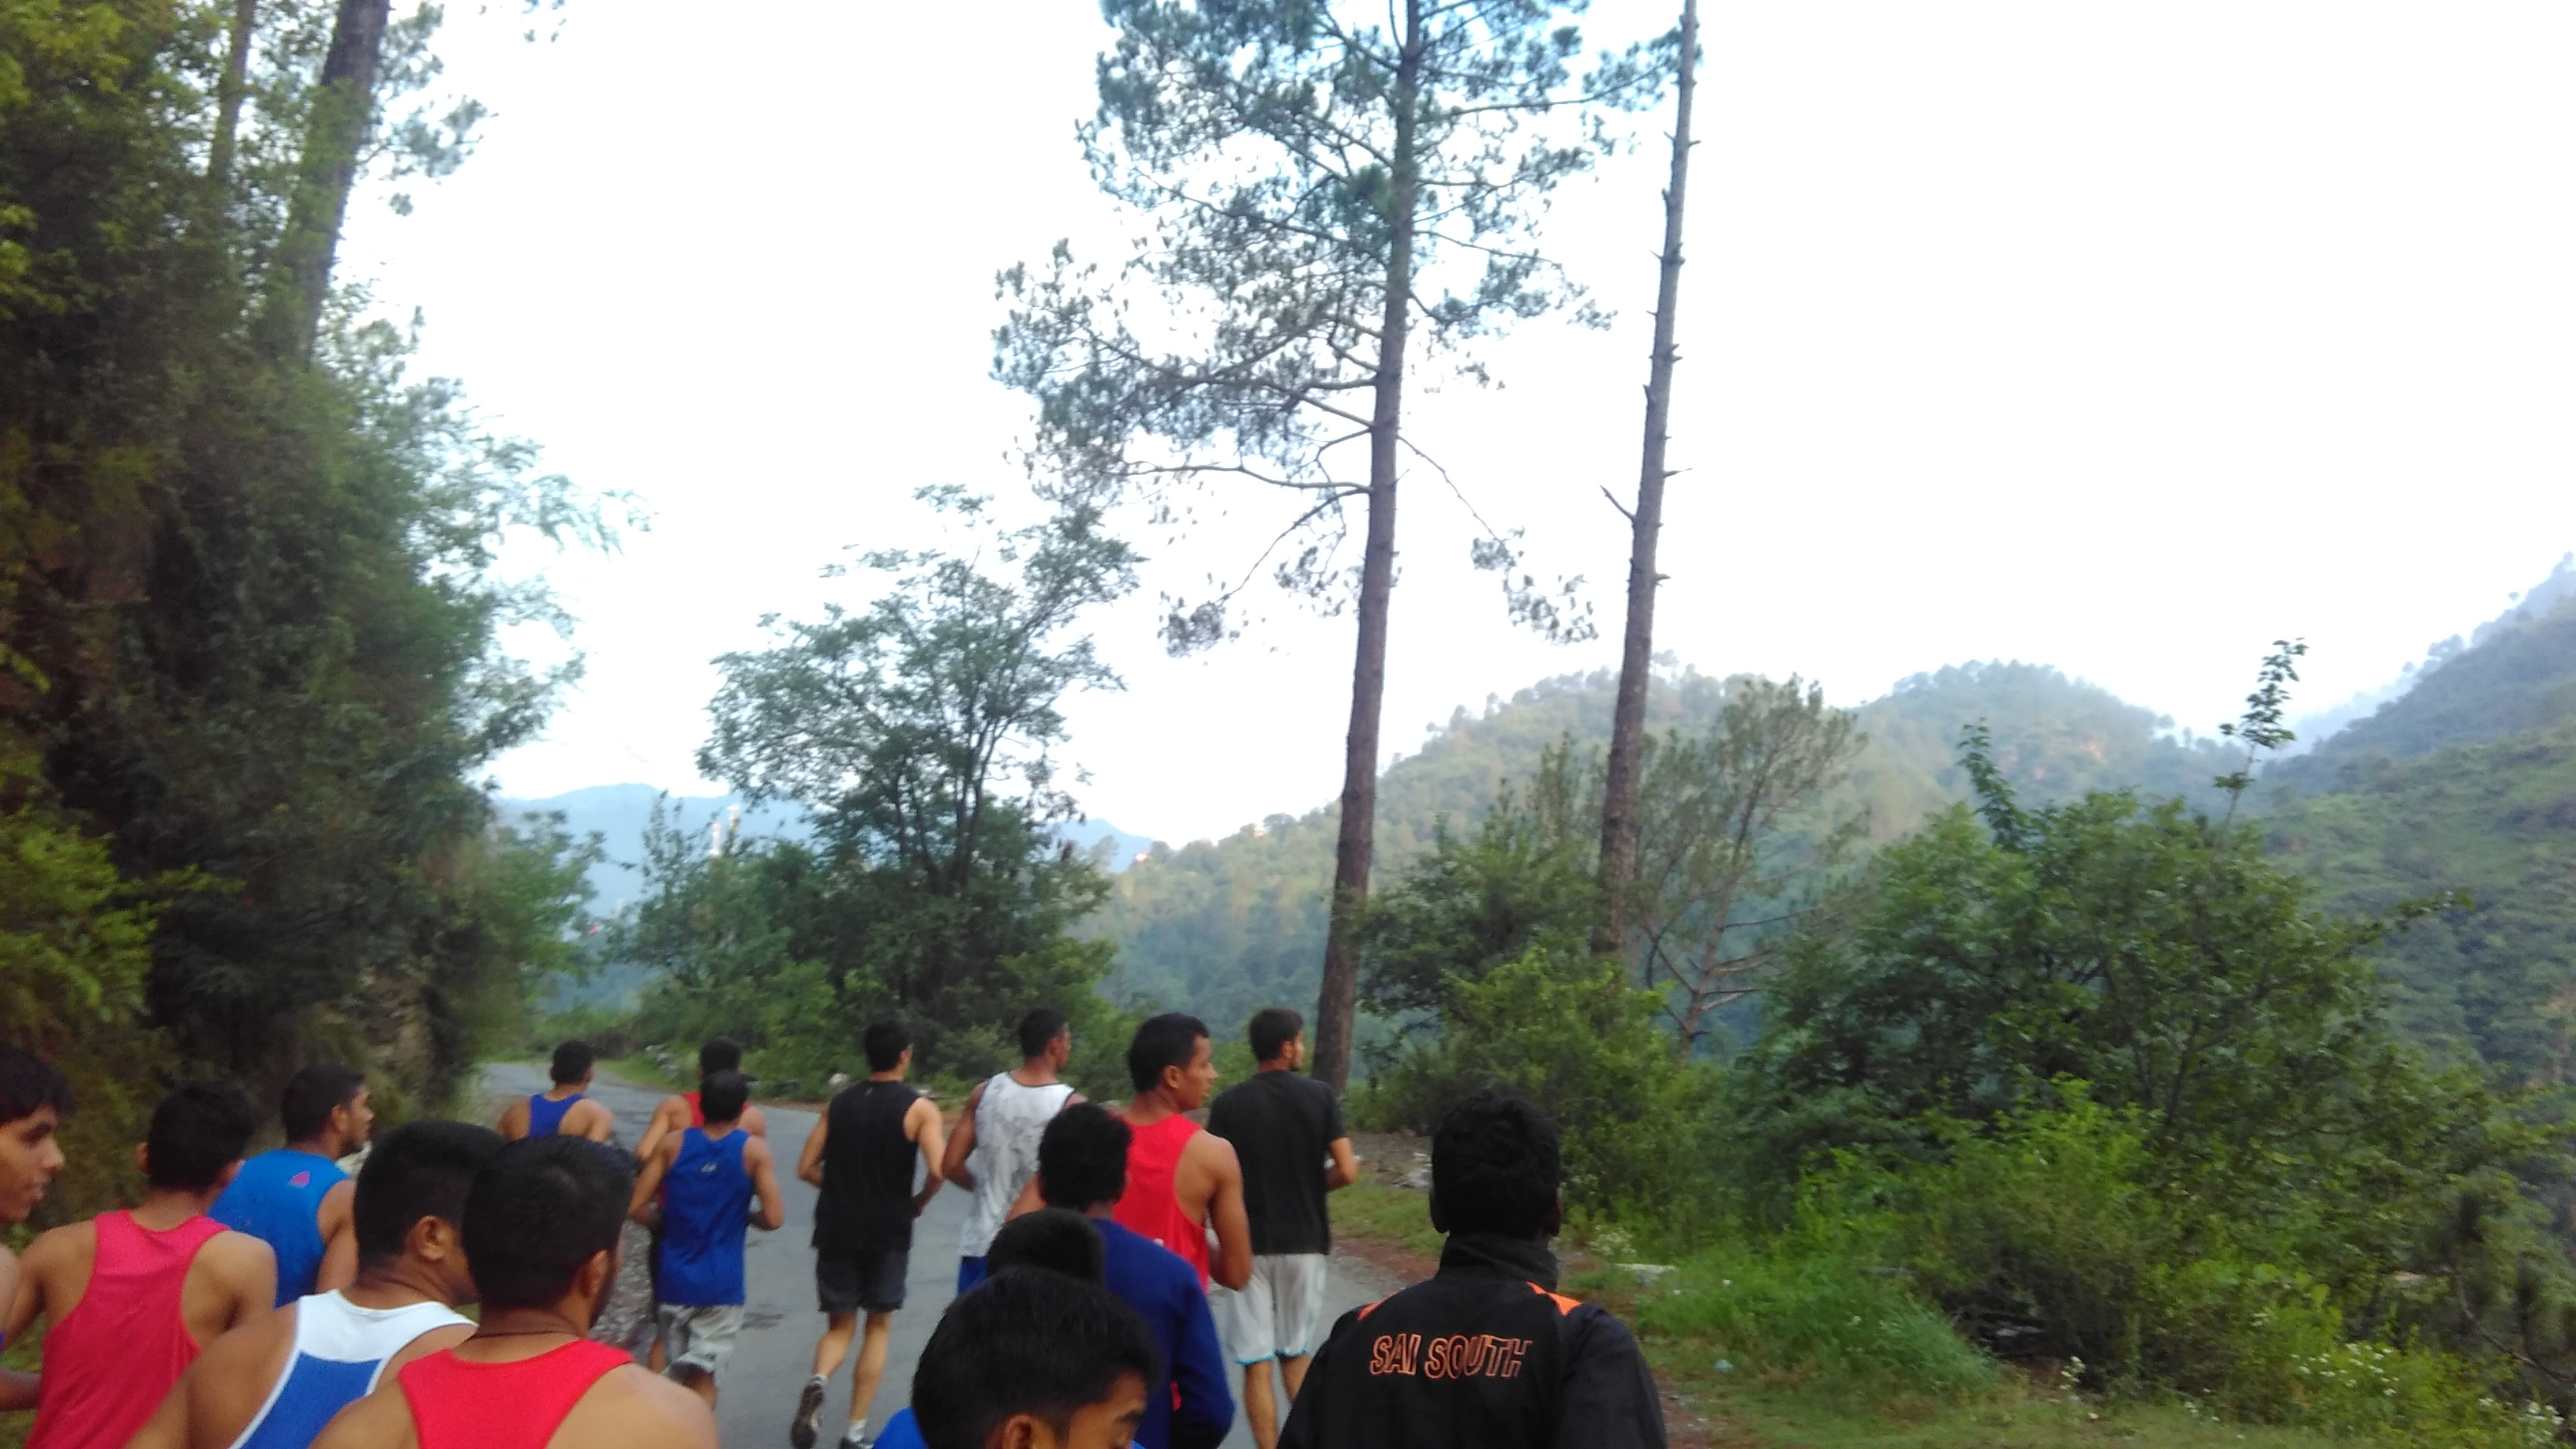 Sports Authority of India National Boxing Academy Rohtak's Trainees During Their Cross Country Run to Chail-2